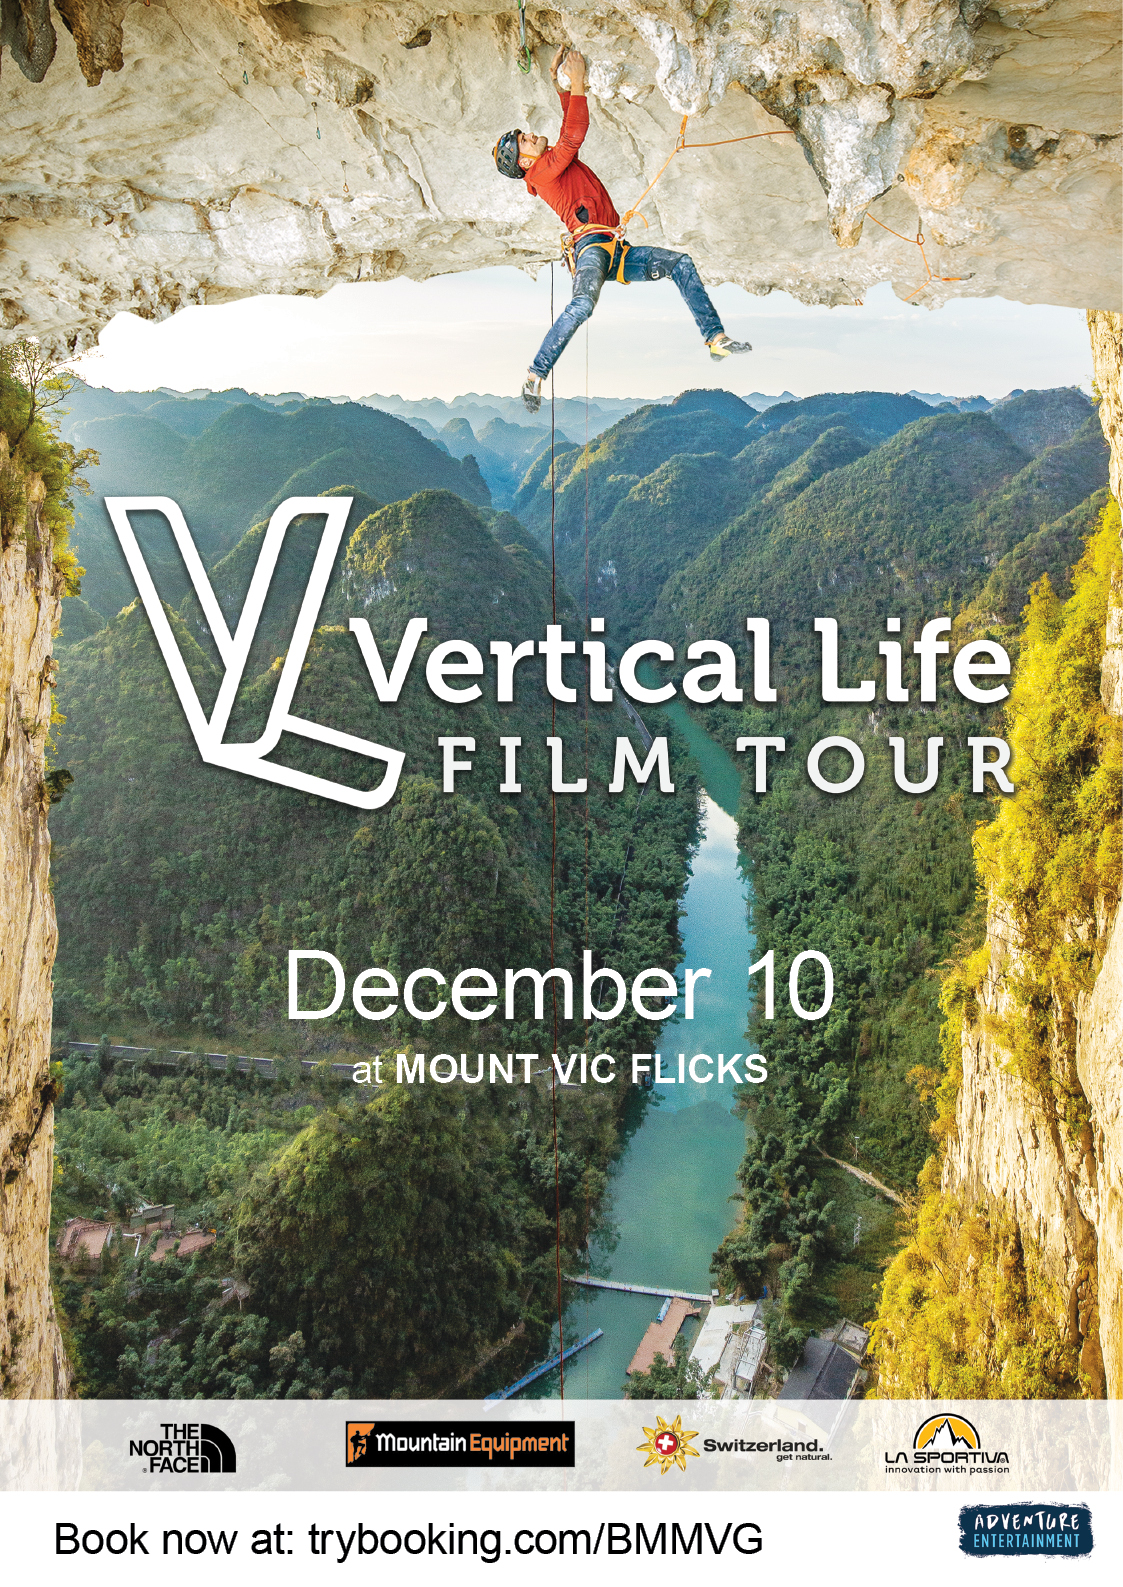 A Vertical Life Film Tour movie poster